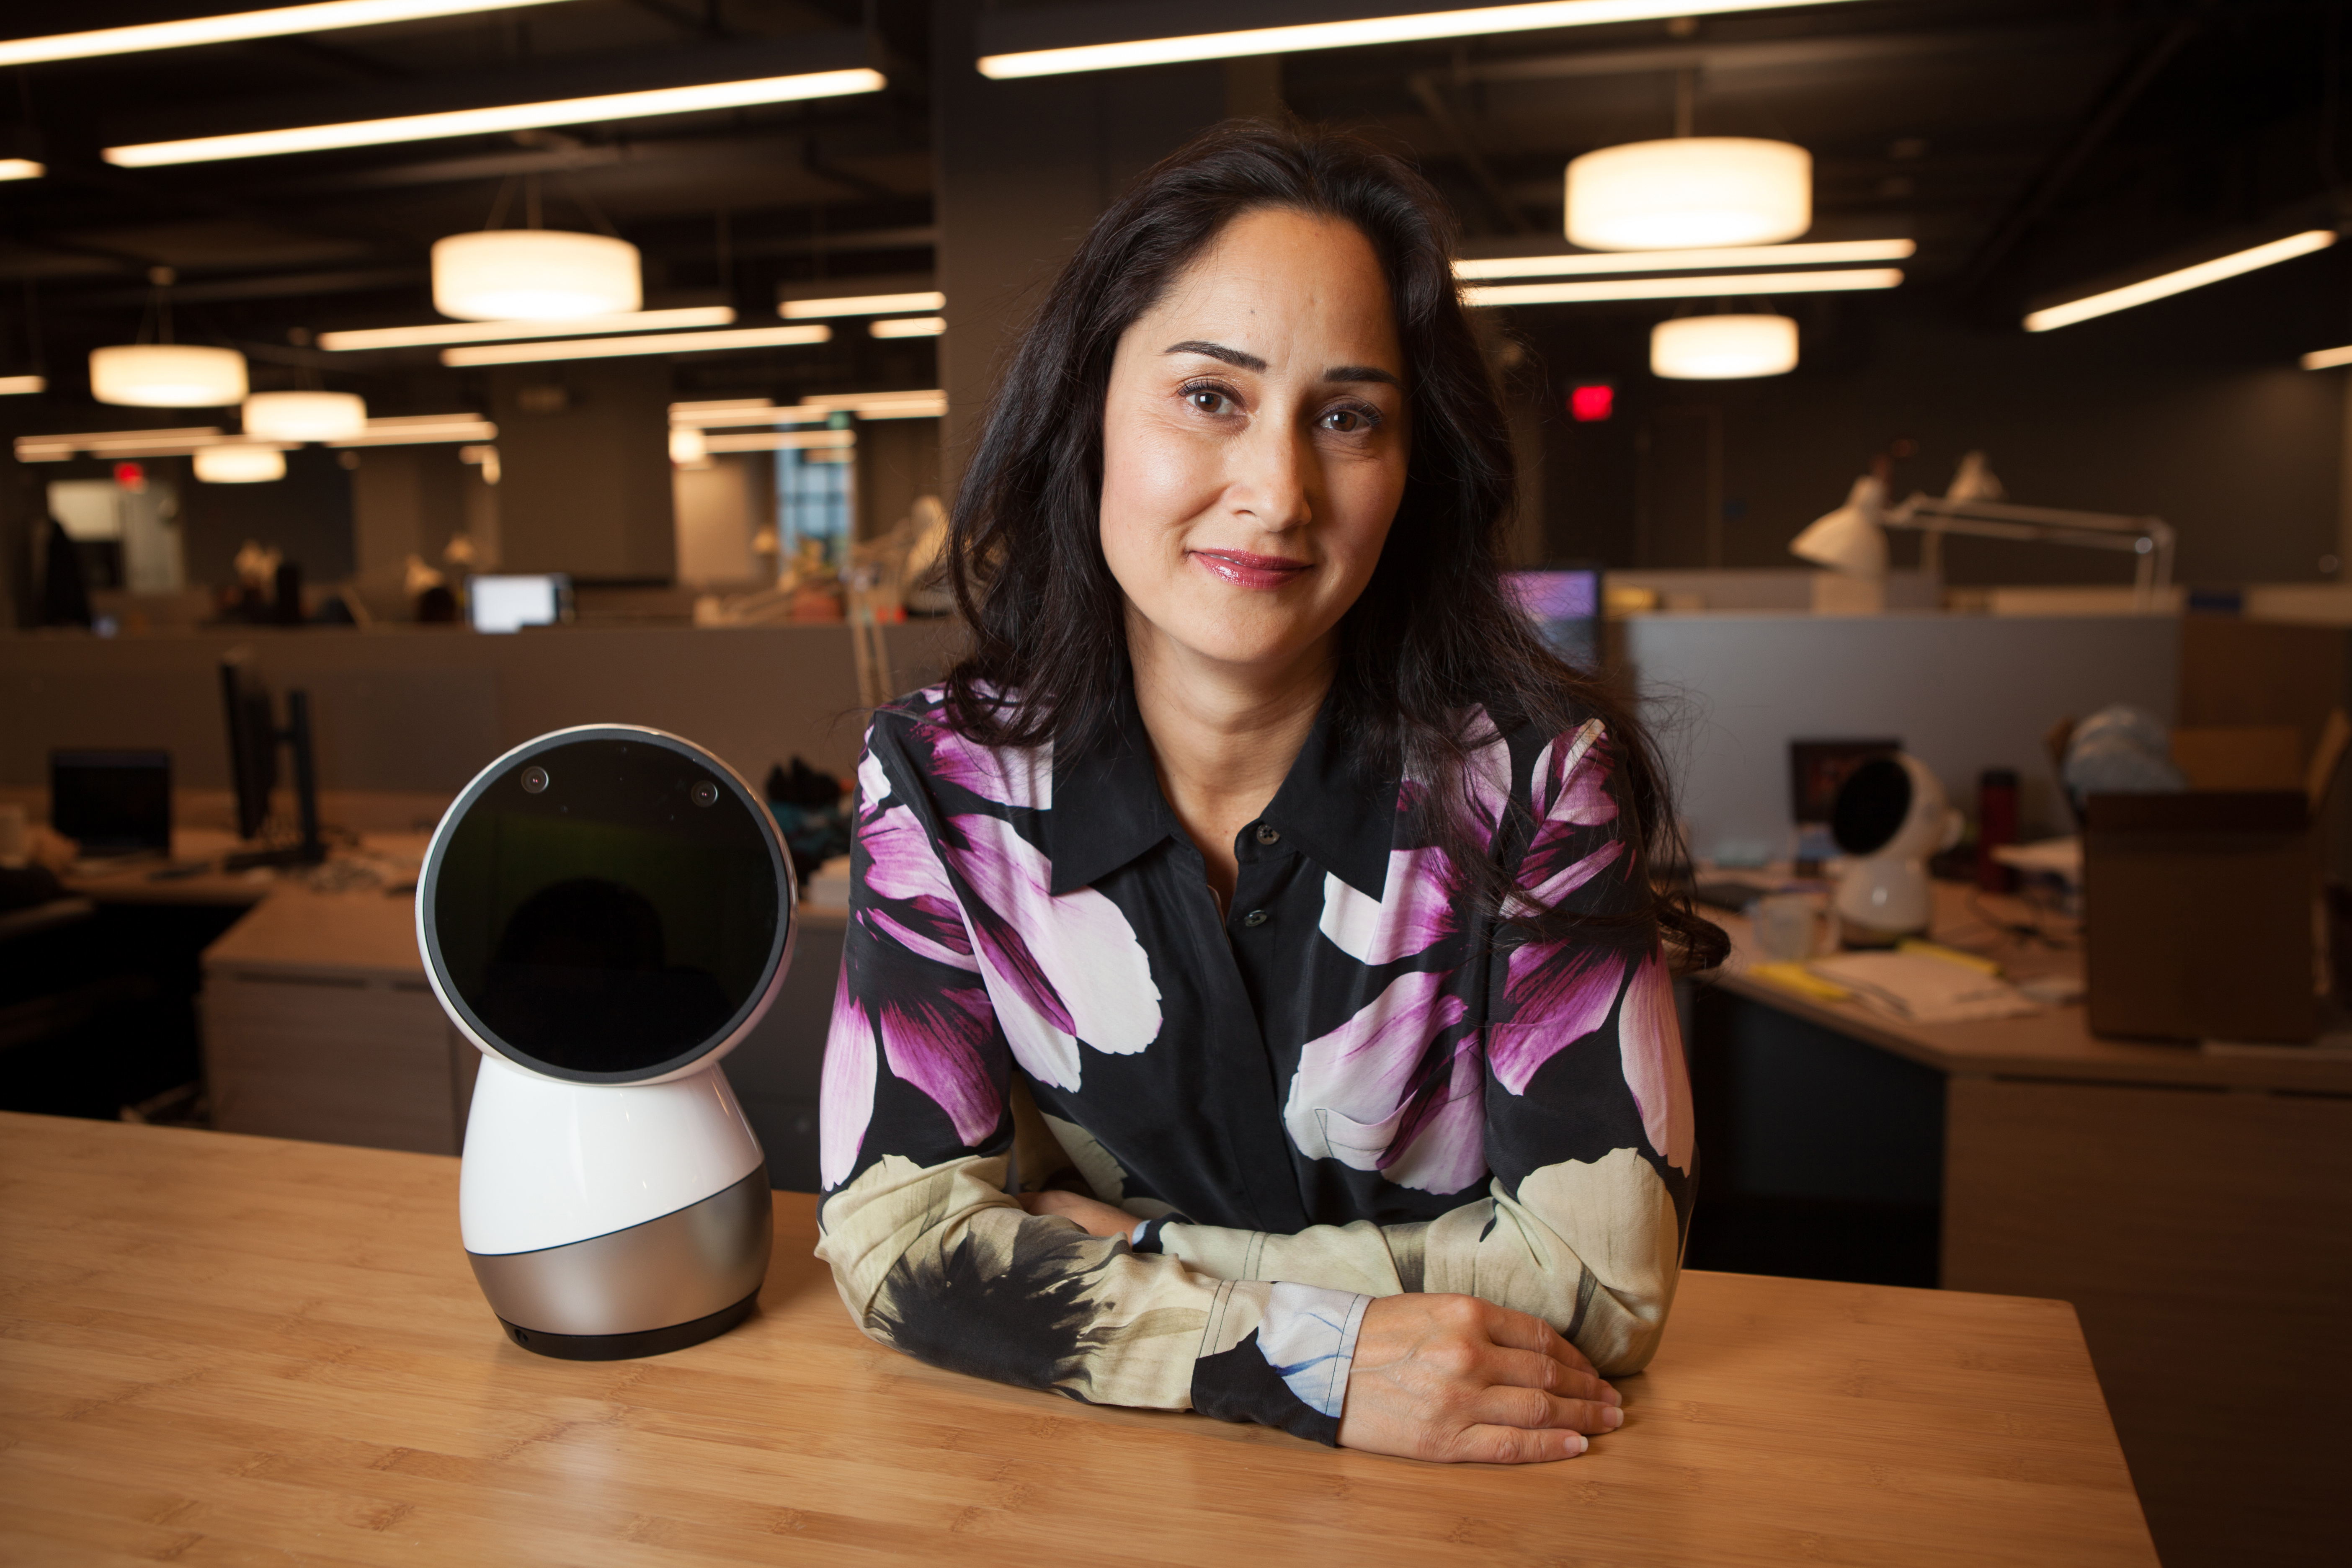 Cynthia Breazeal, ingeniera robótica junto al robot en Jibo Inc., en Boston (The Washington Post / Matthew Cavanaugh)